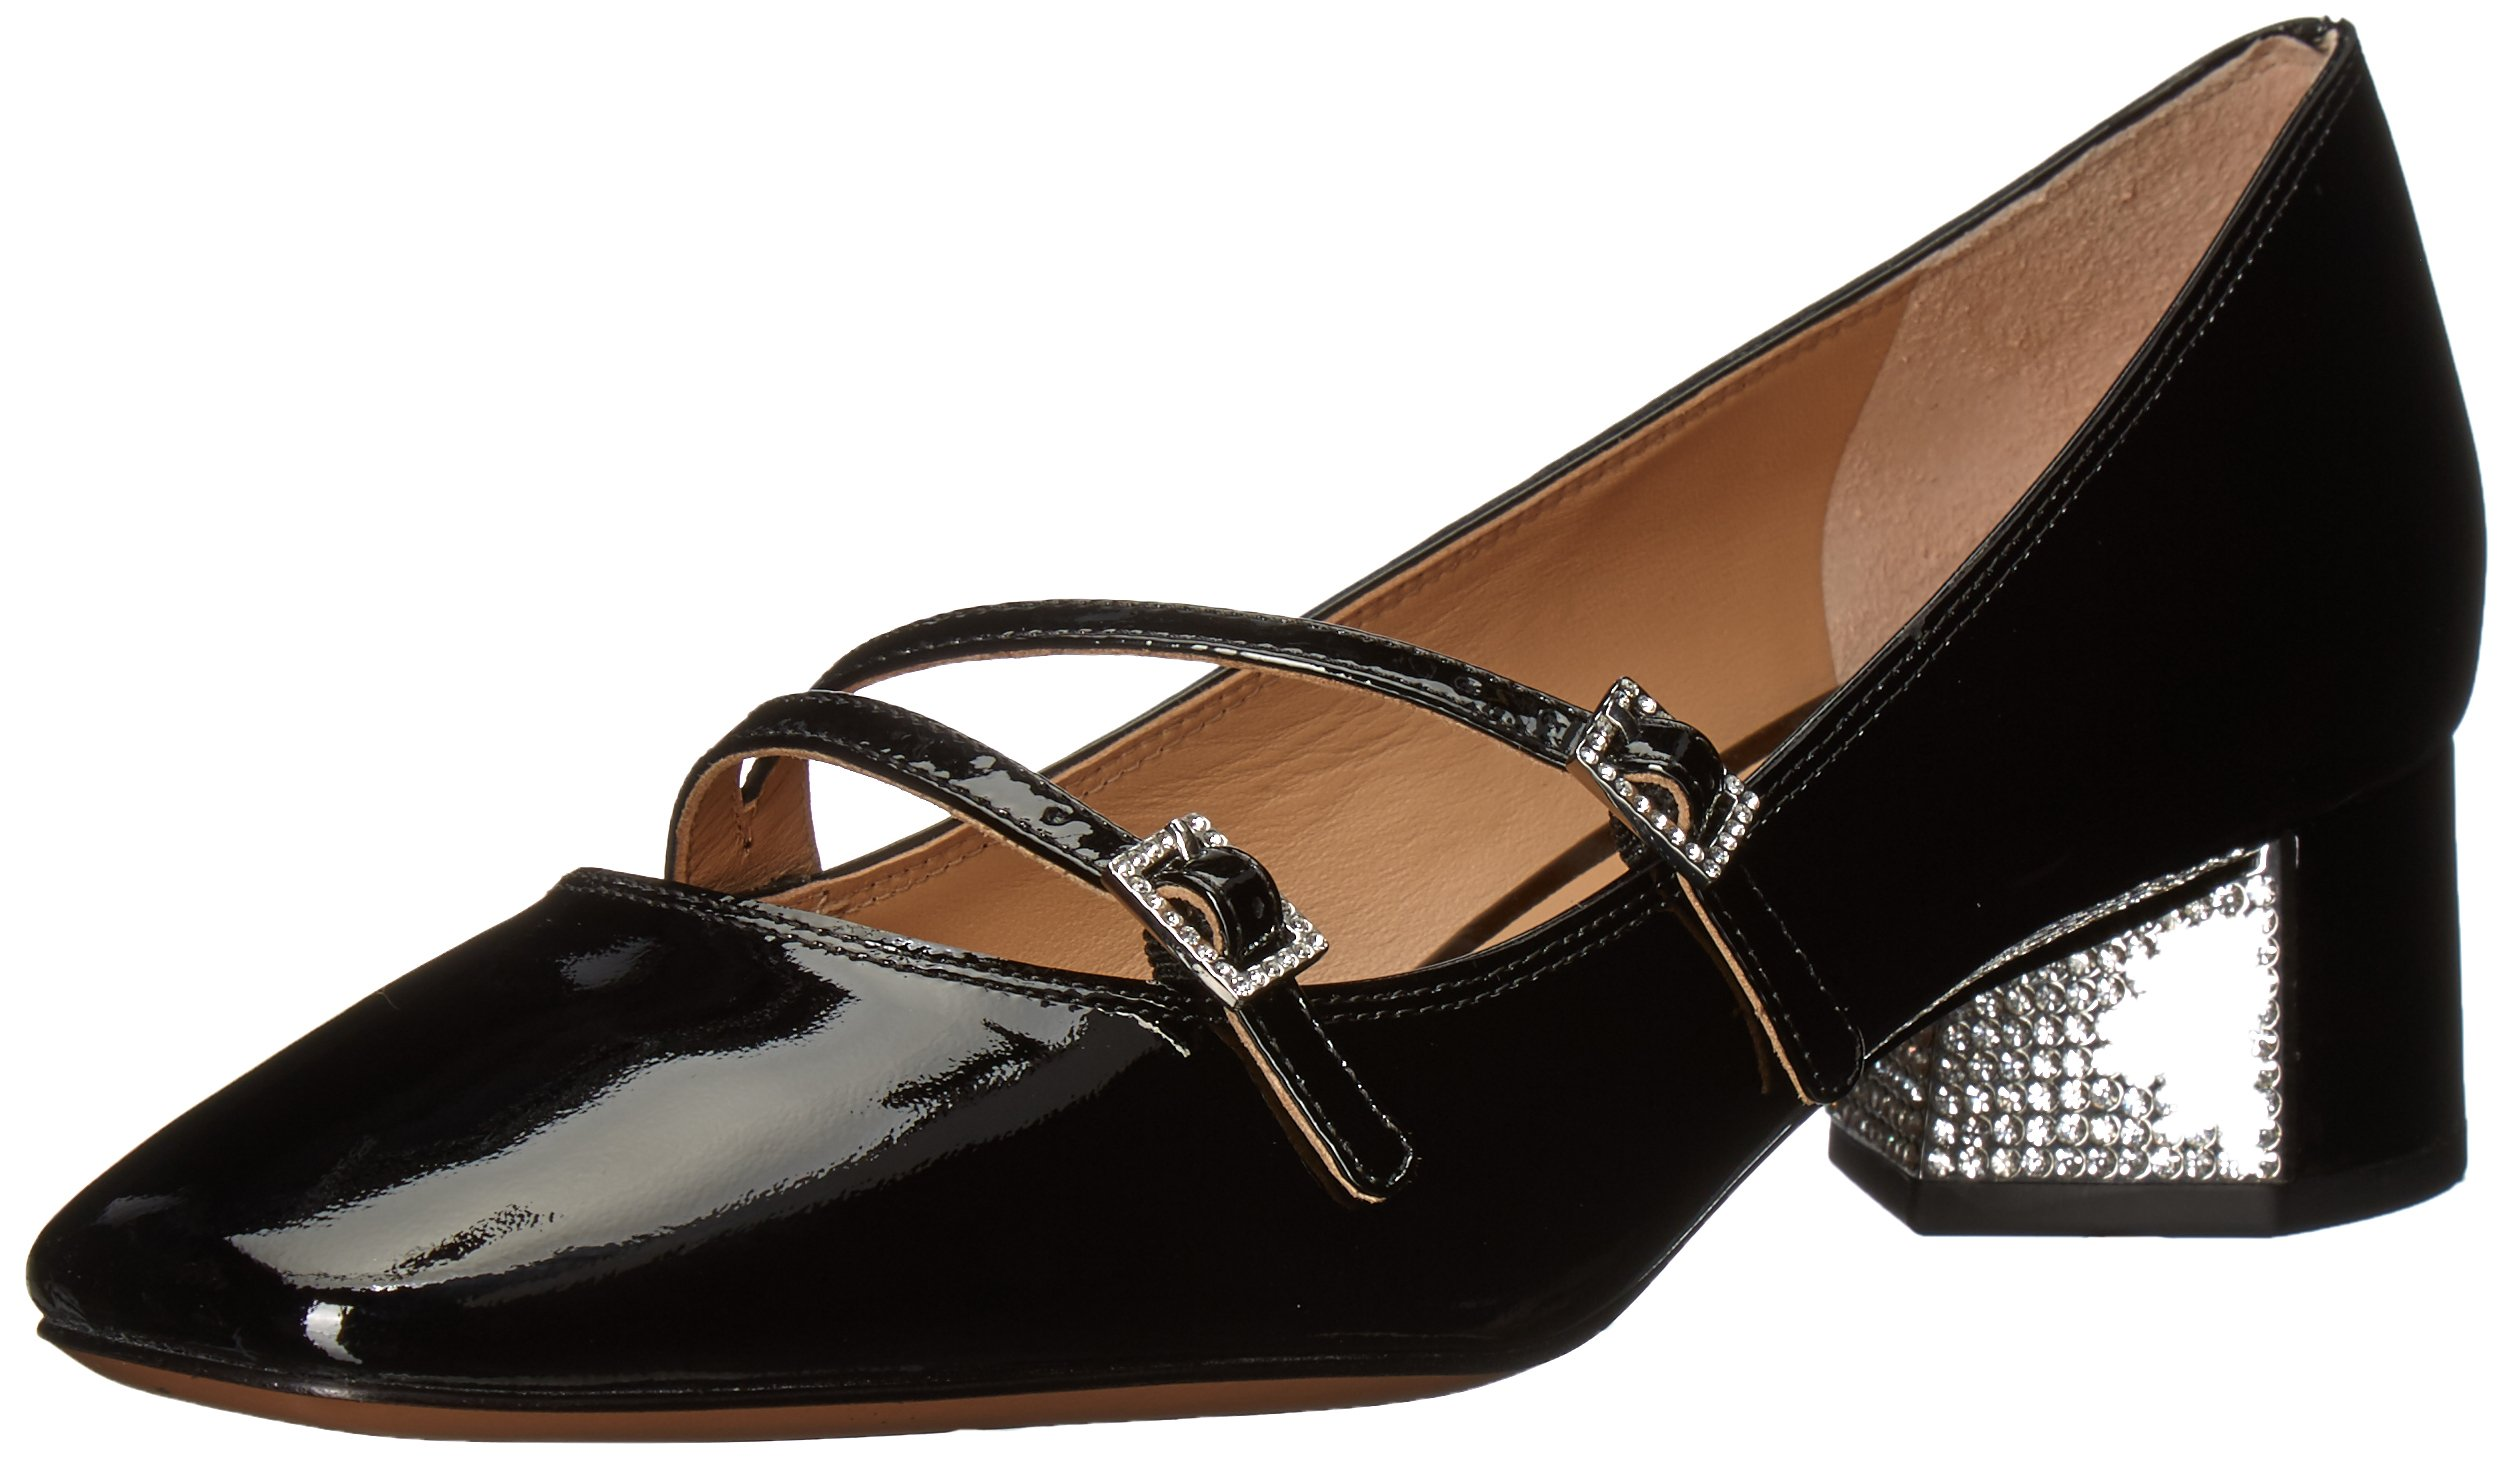 Marc Jacobs Women's Bella Strass Mary Jane Pump, Black, 37 M EU (7 US)